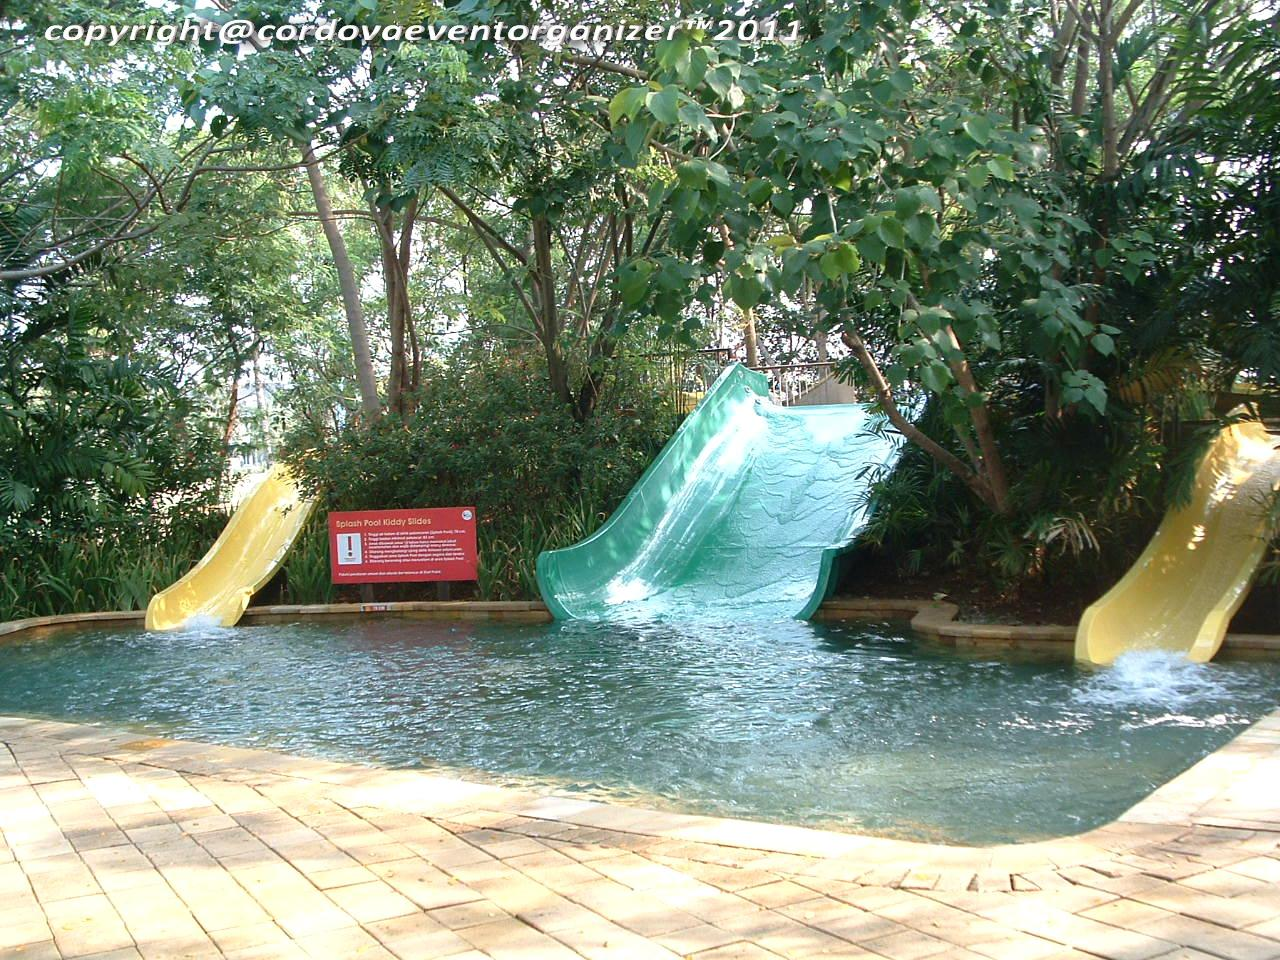 Waterbom Pik 20 Cordova Event Organizer Waterboom